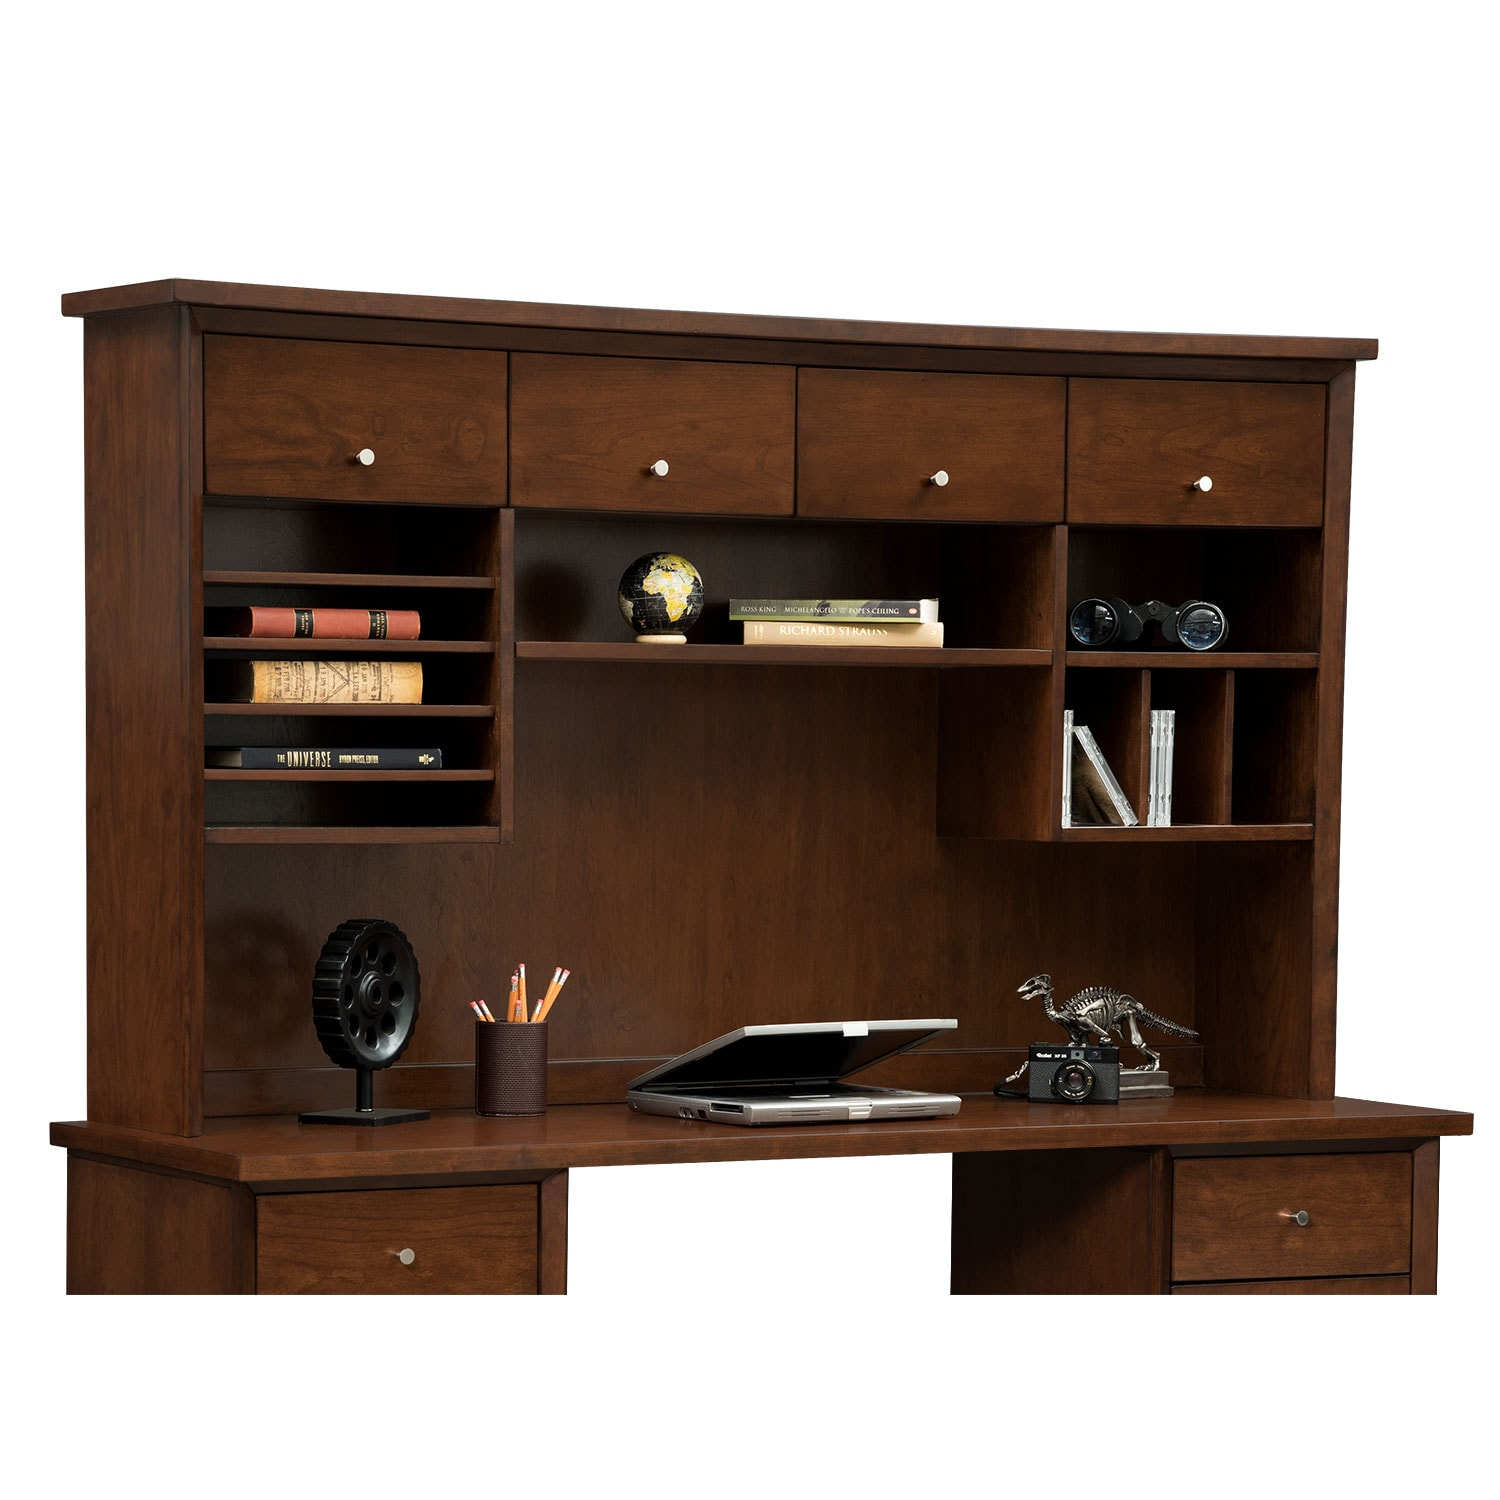 Home Office Furniture - Oslo Cherry 4-Door Hutch